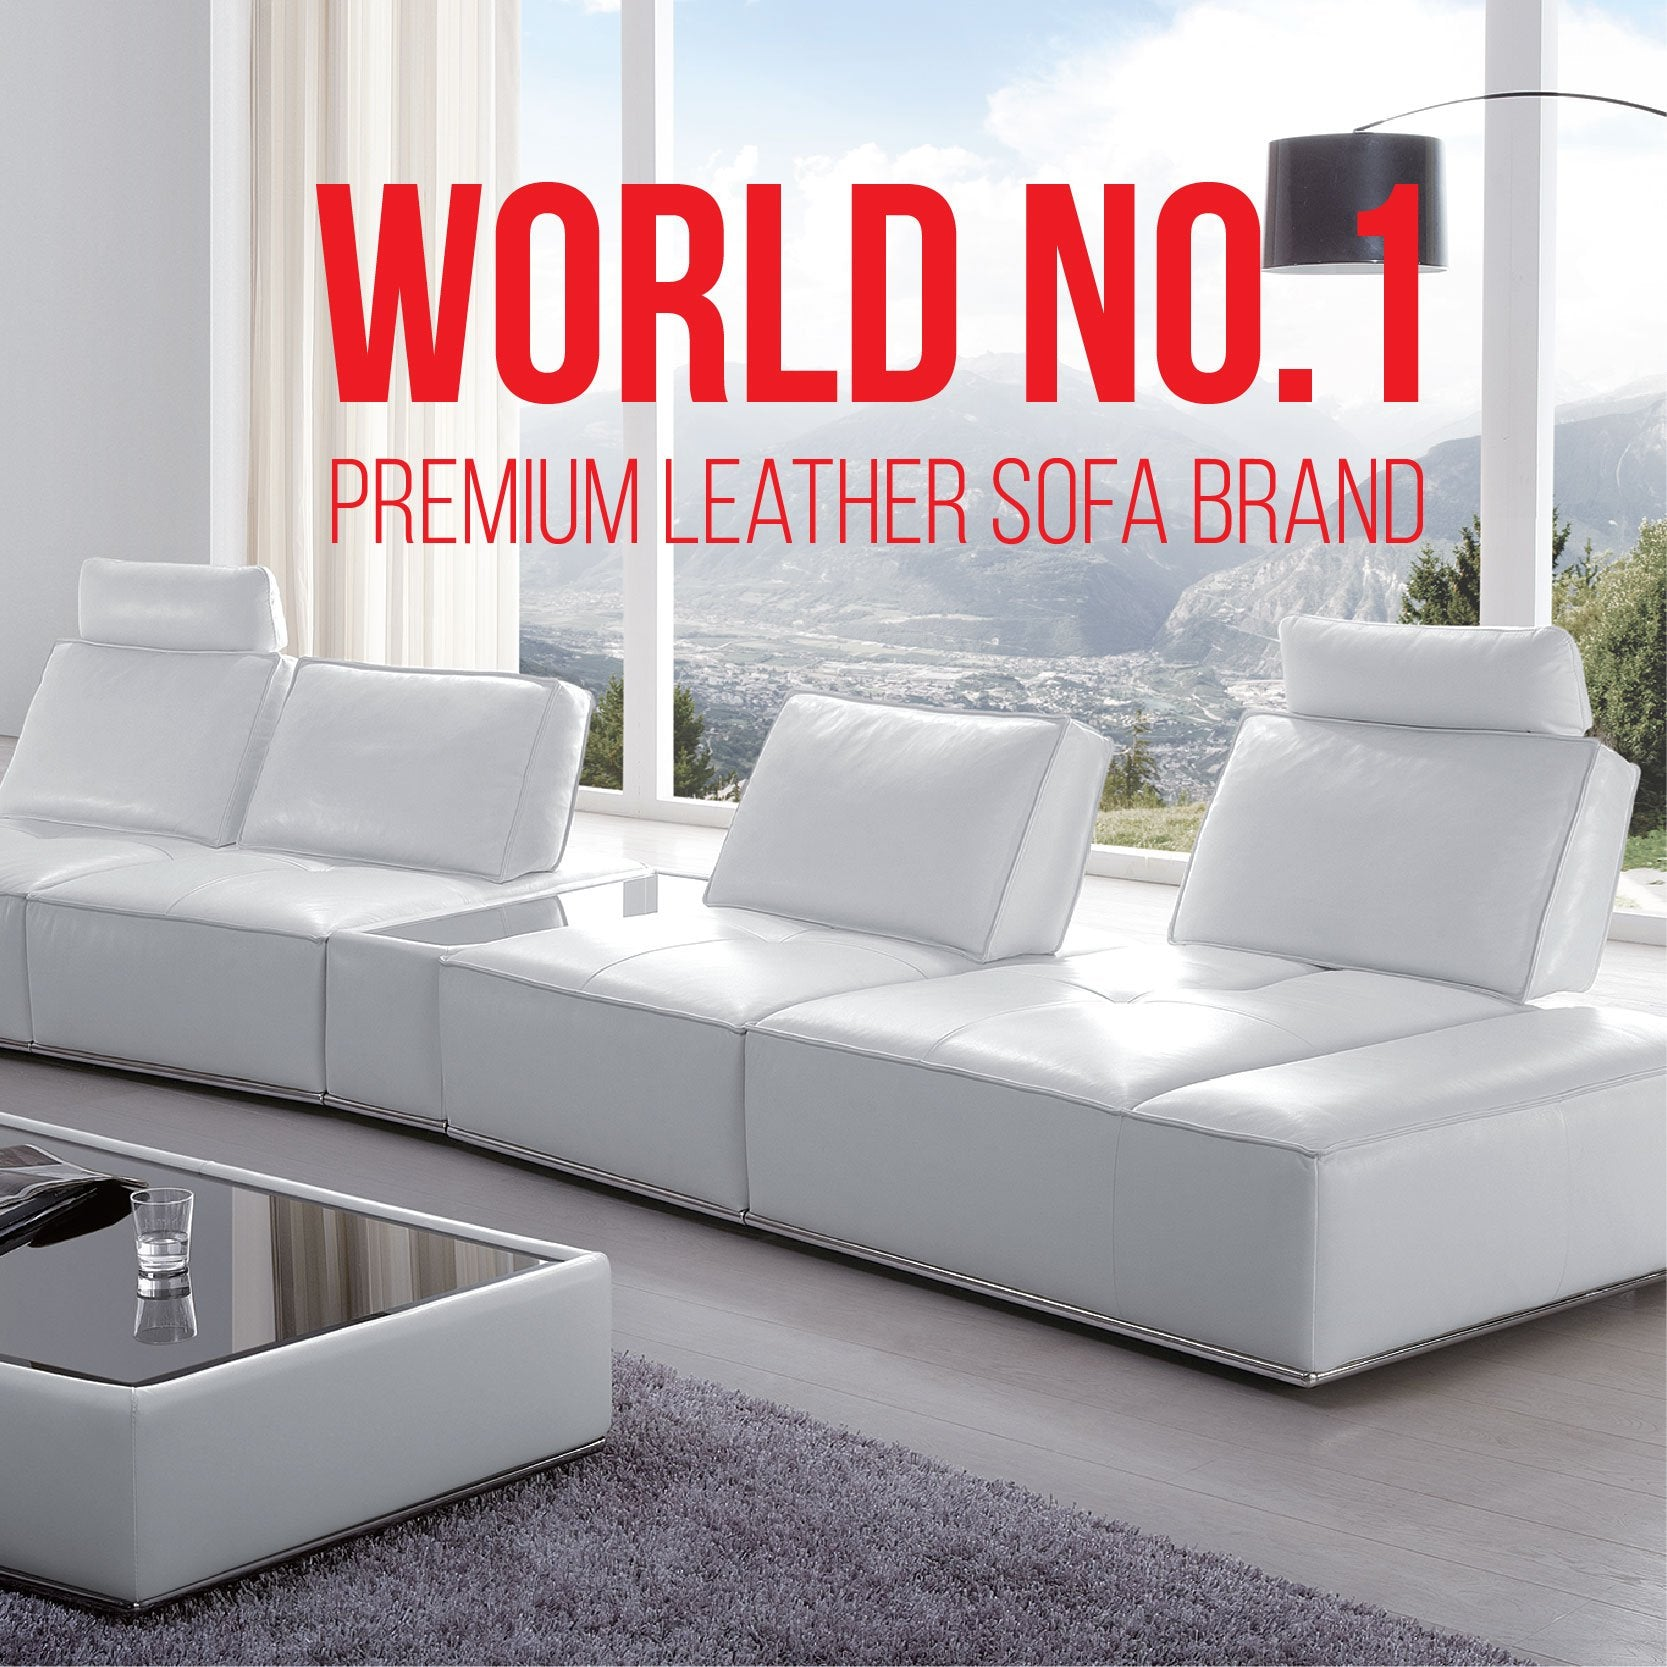 Remarkable Kuka Singapores No 1 Premium Leather Sofa Bed Frame Brand Interior Design Ideas Clesiryabchikinfo